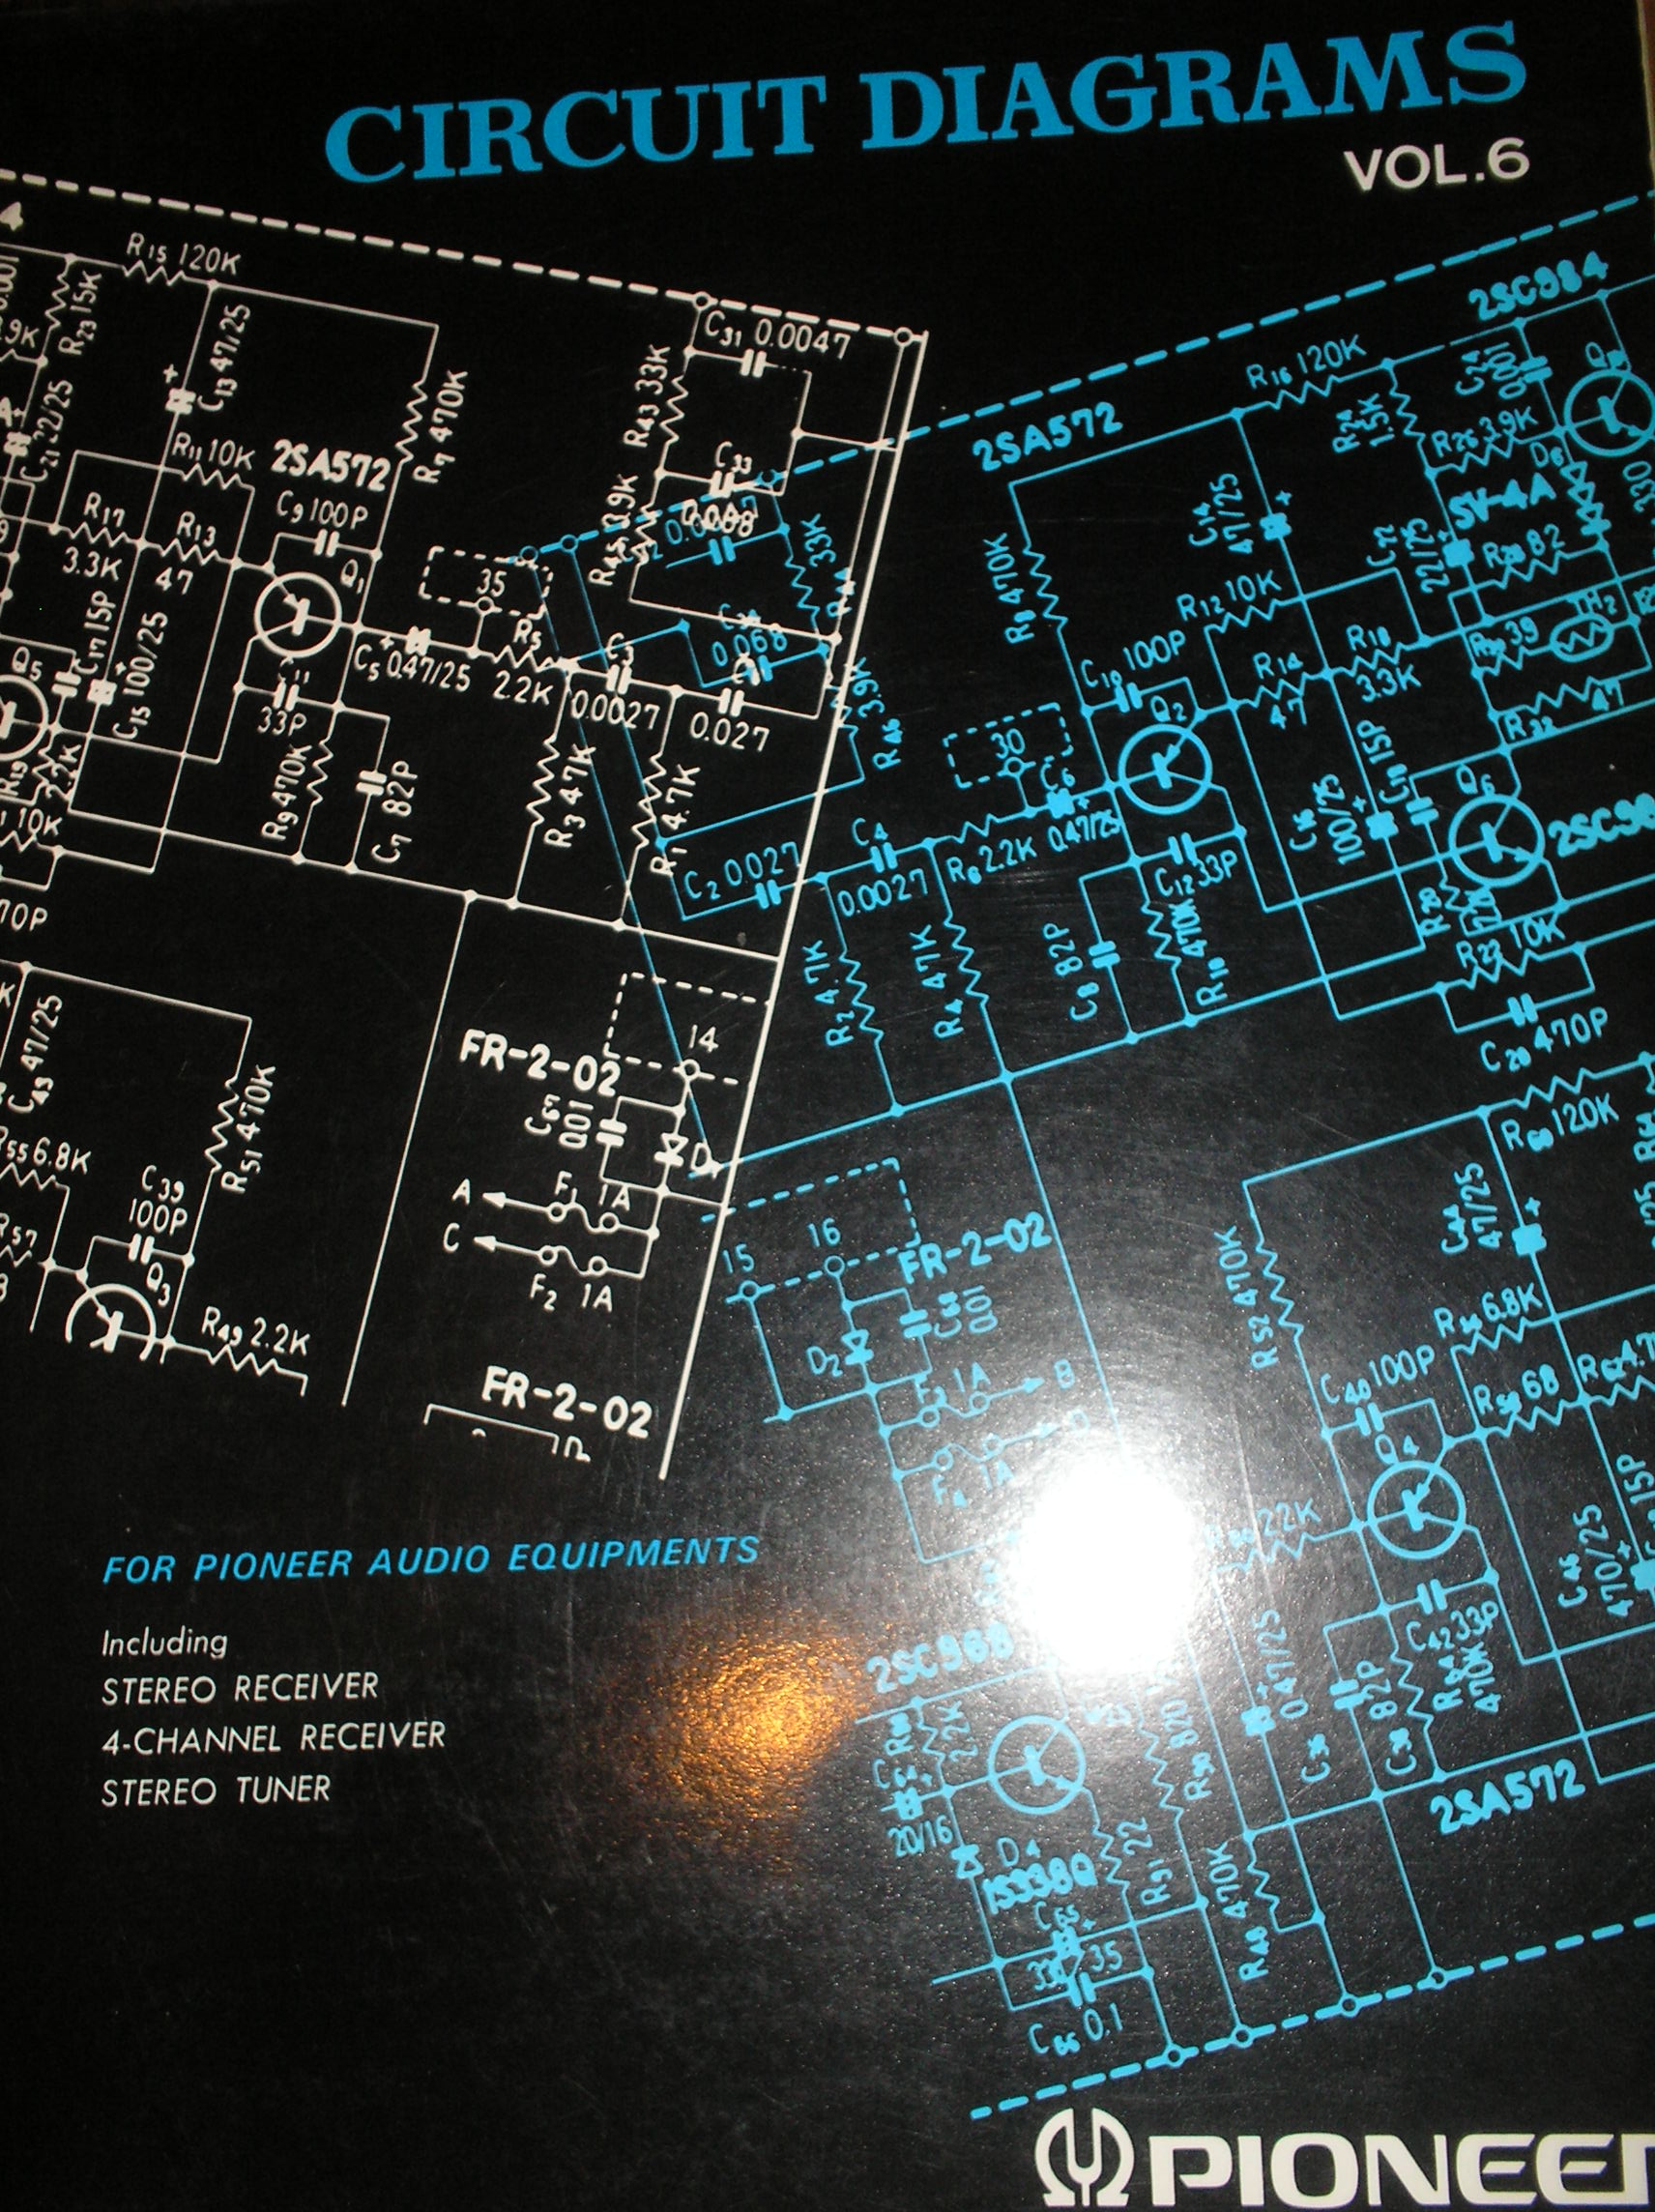 TX-5300 Stereo Tuner fold out schematics  PIONEER SCHEMATIC MANUALS